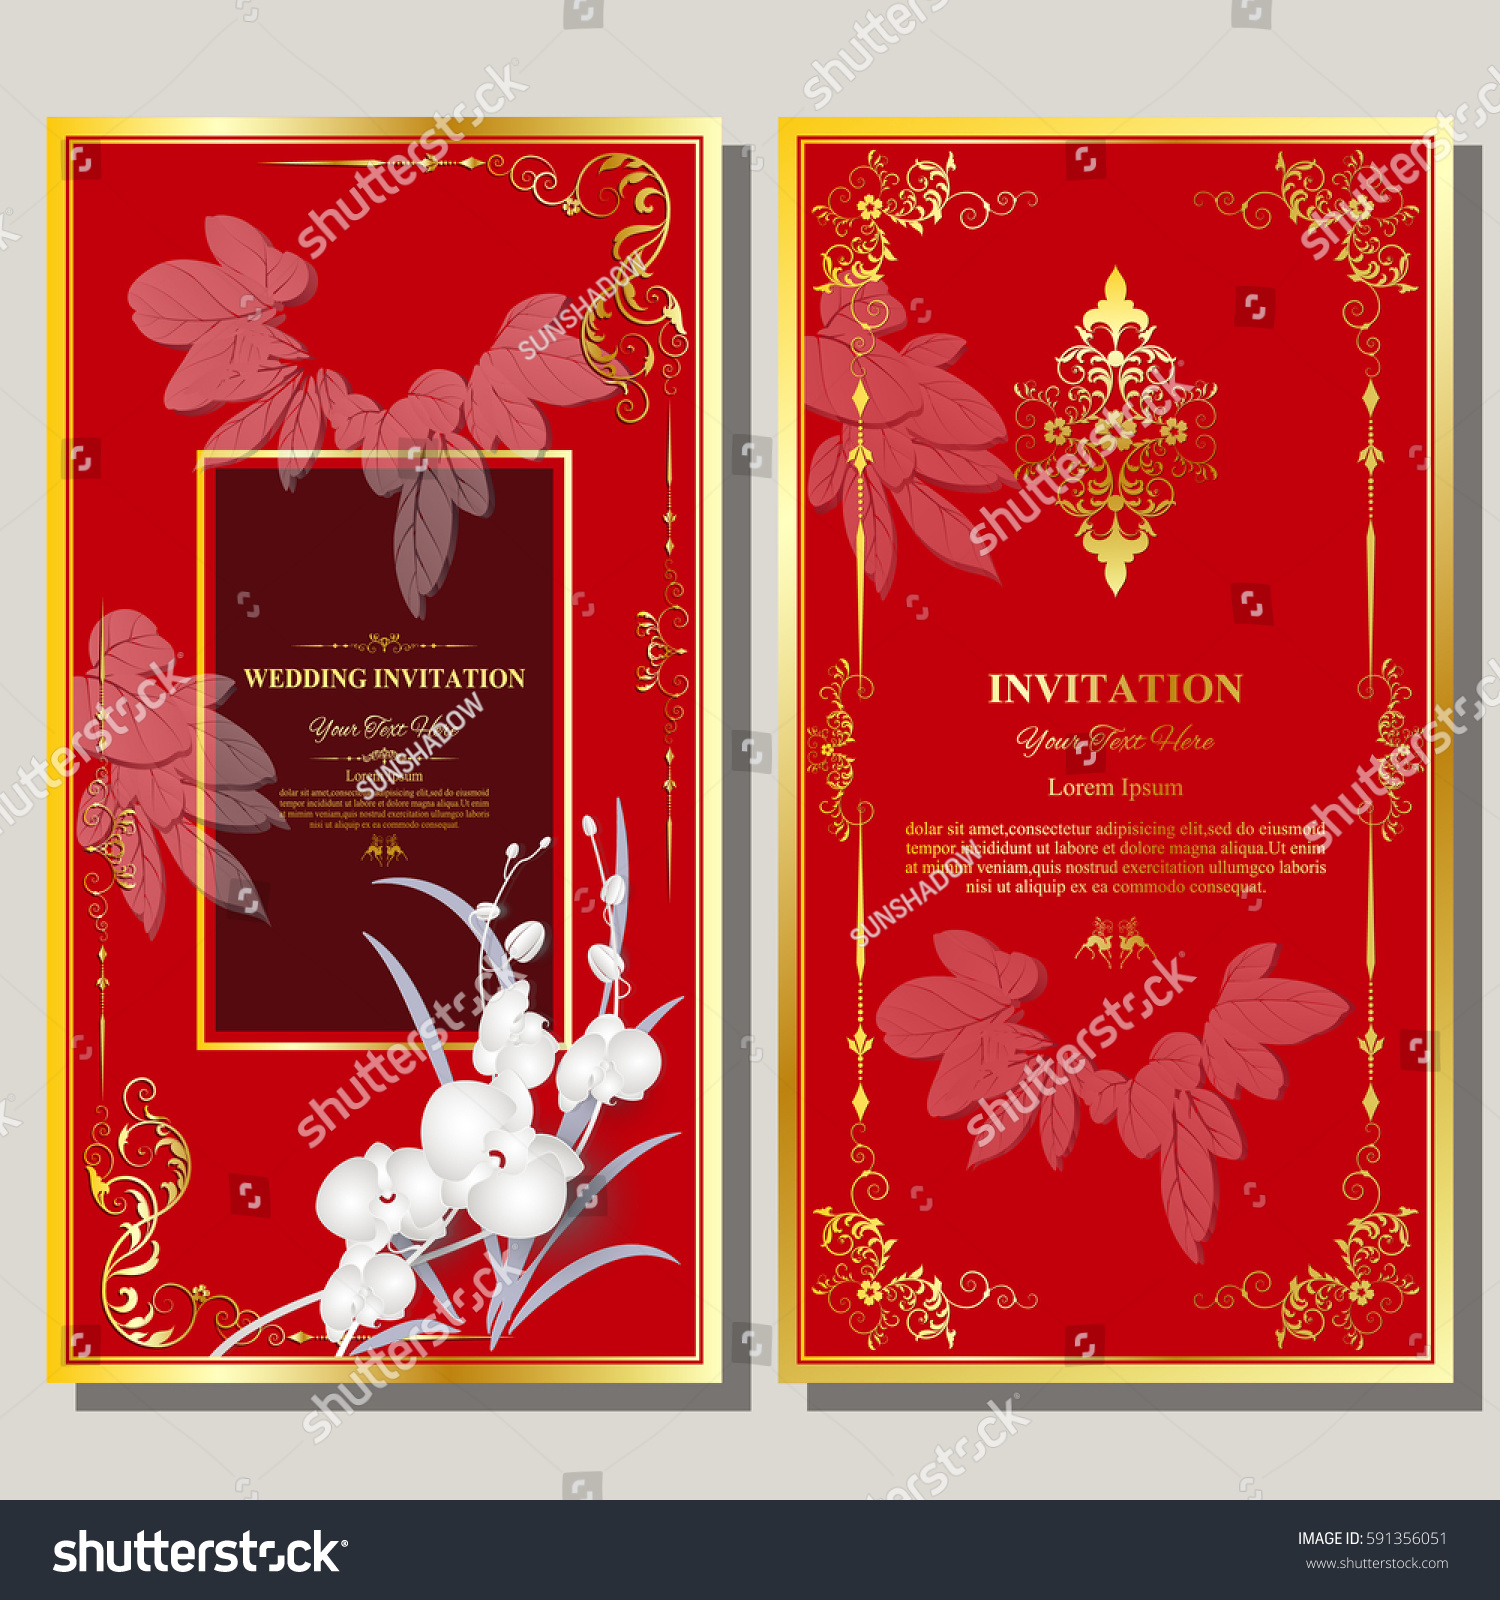 Wedding Invitation Card Flyer Pages Illustration Stock Vector ...